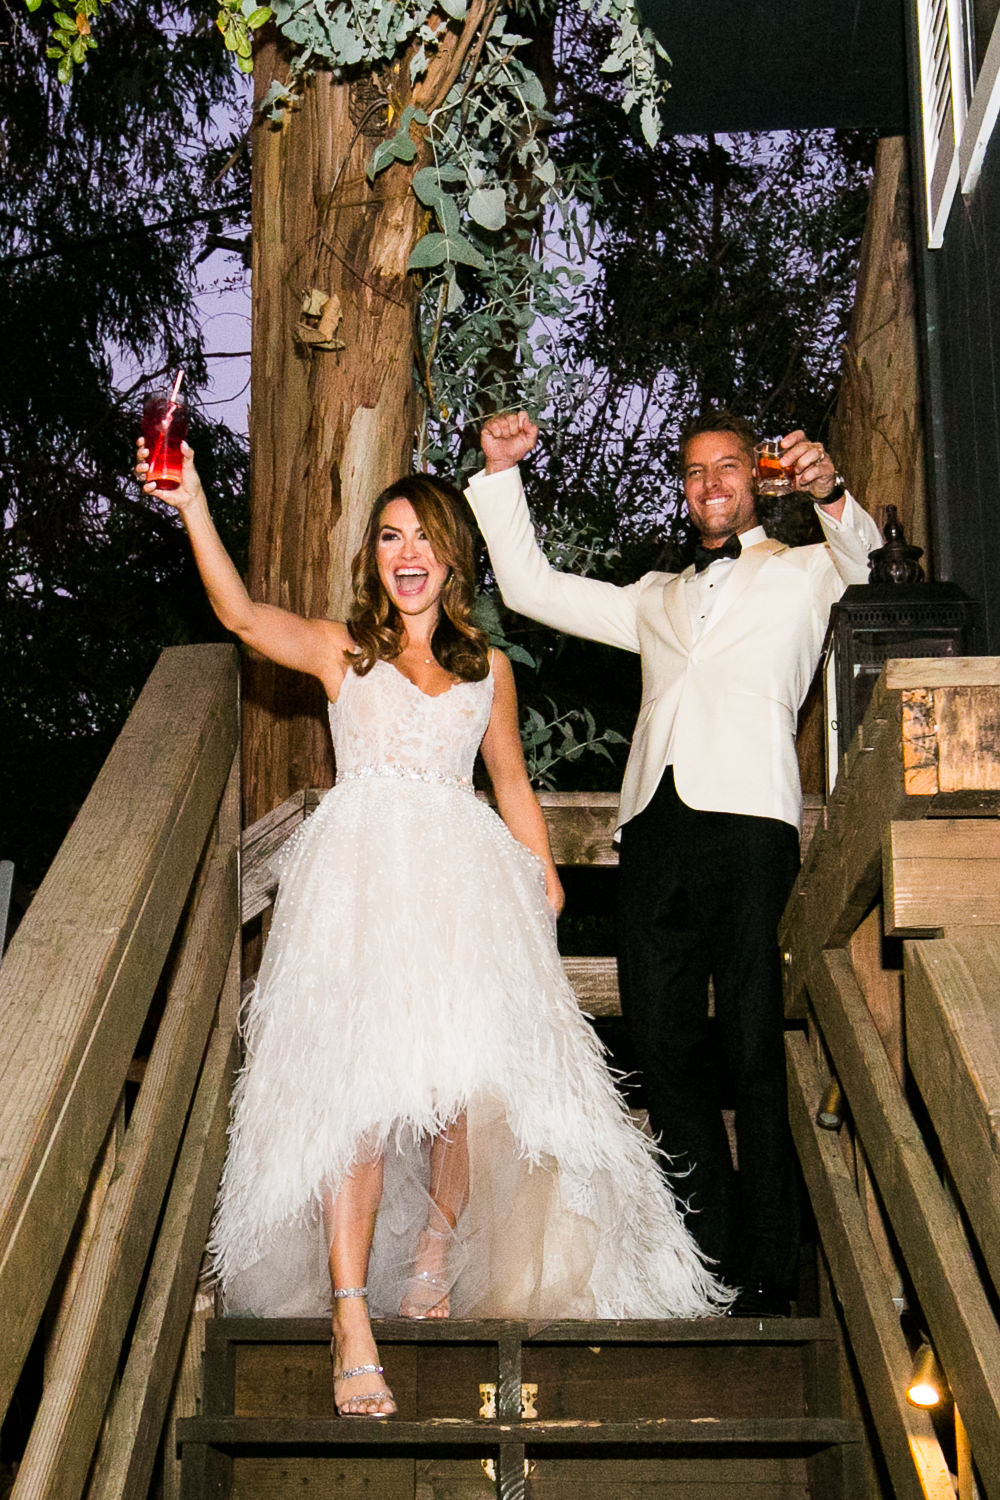 Justin Hartley Wedding in People Magazine at Calamigos Ranch - 8